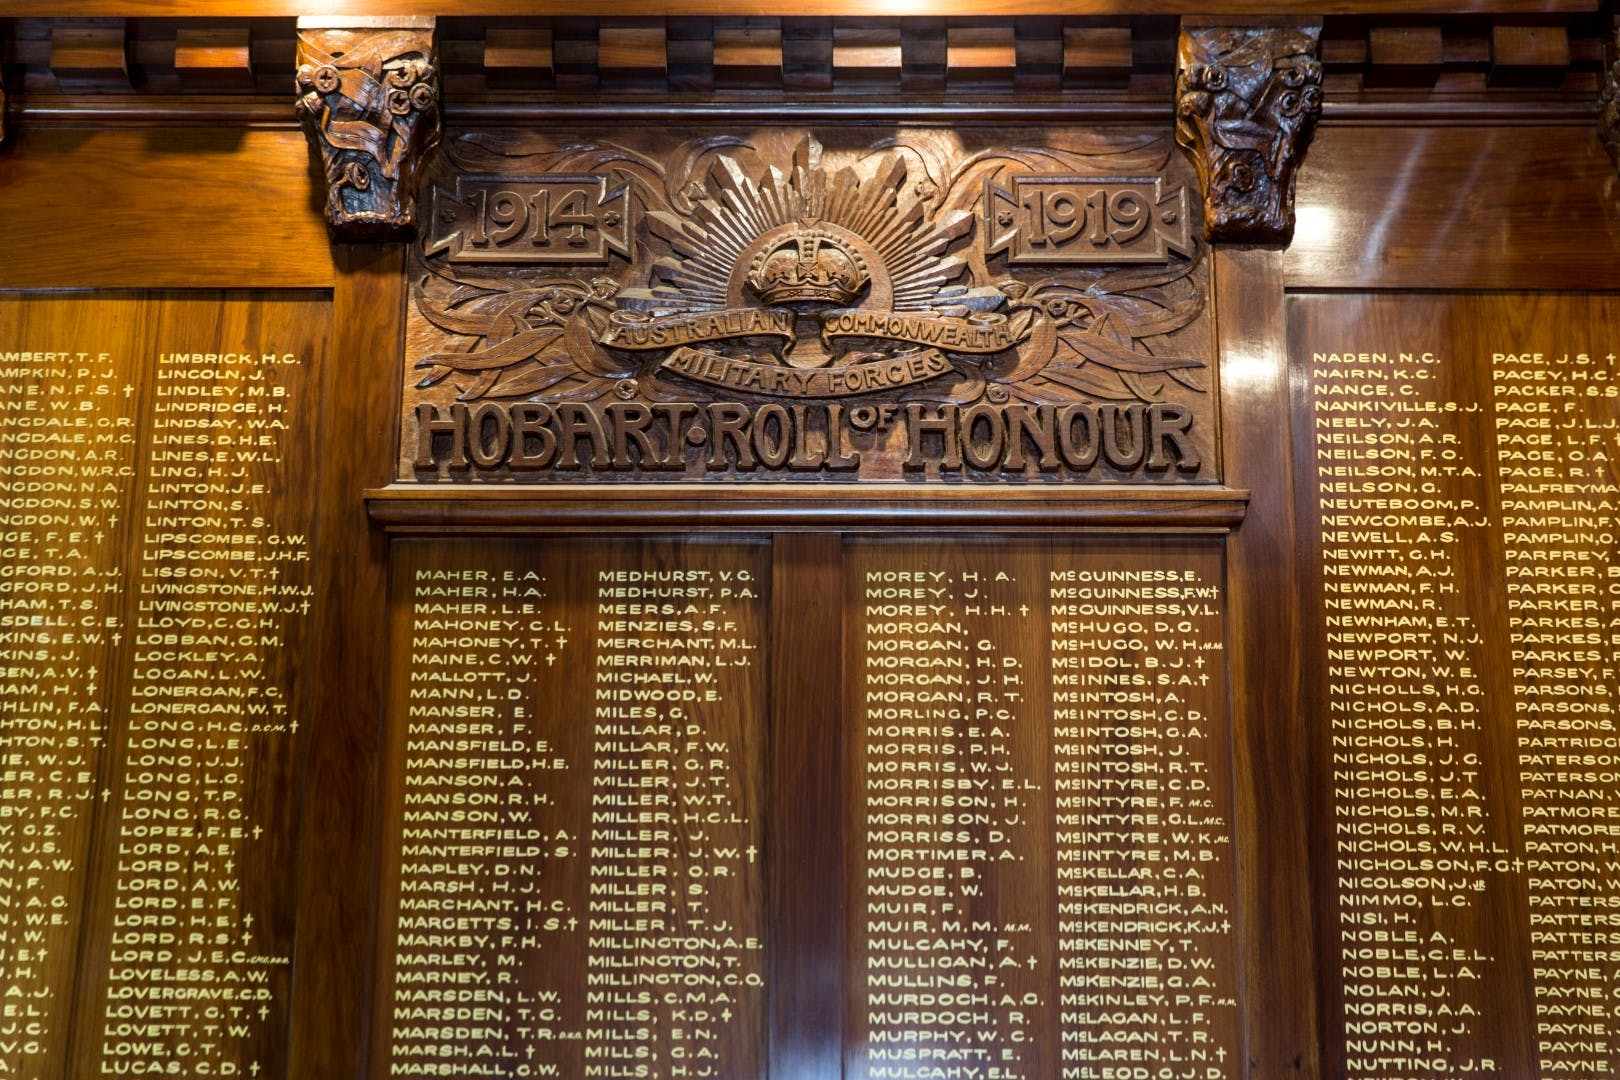 Town Hall  - Hobart Roll of Honour